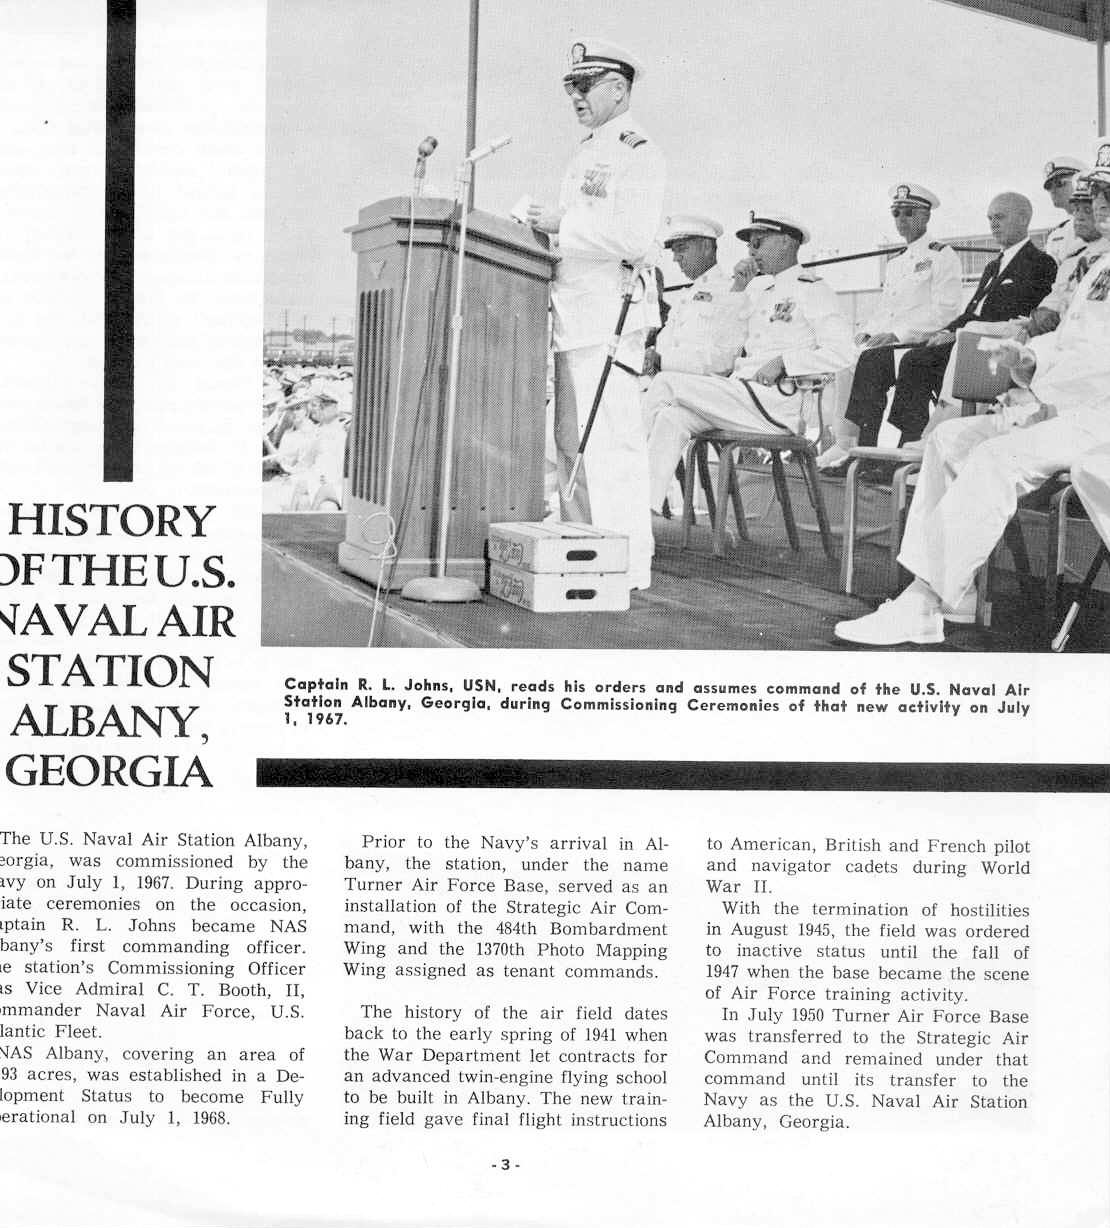 History of the US Naval Air Station in Albany